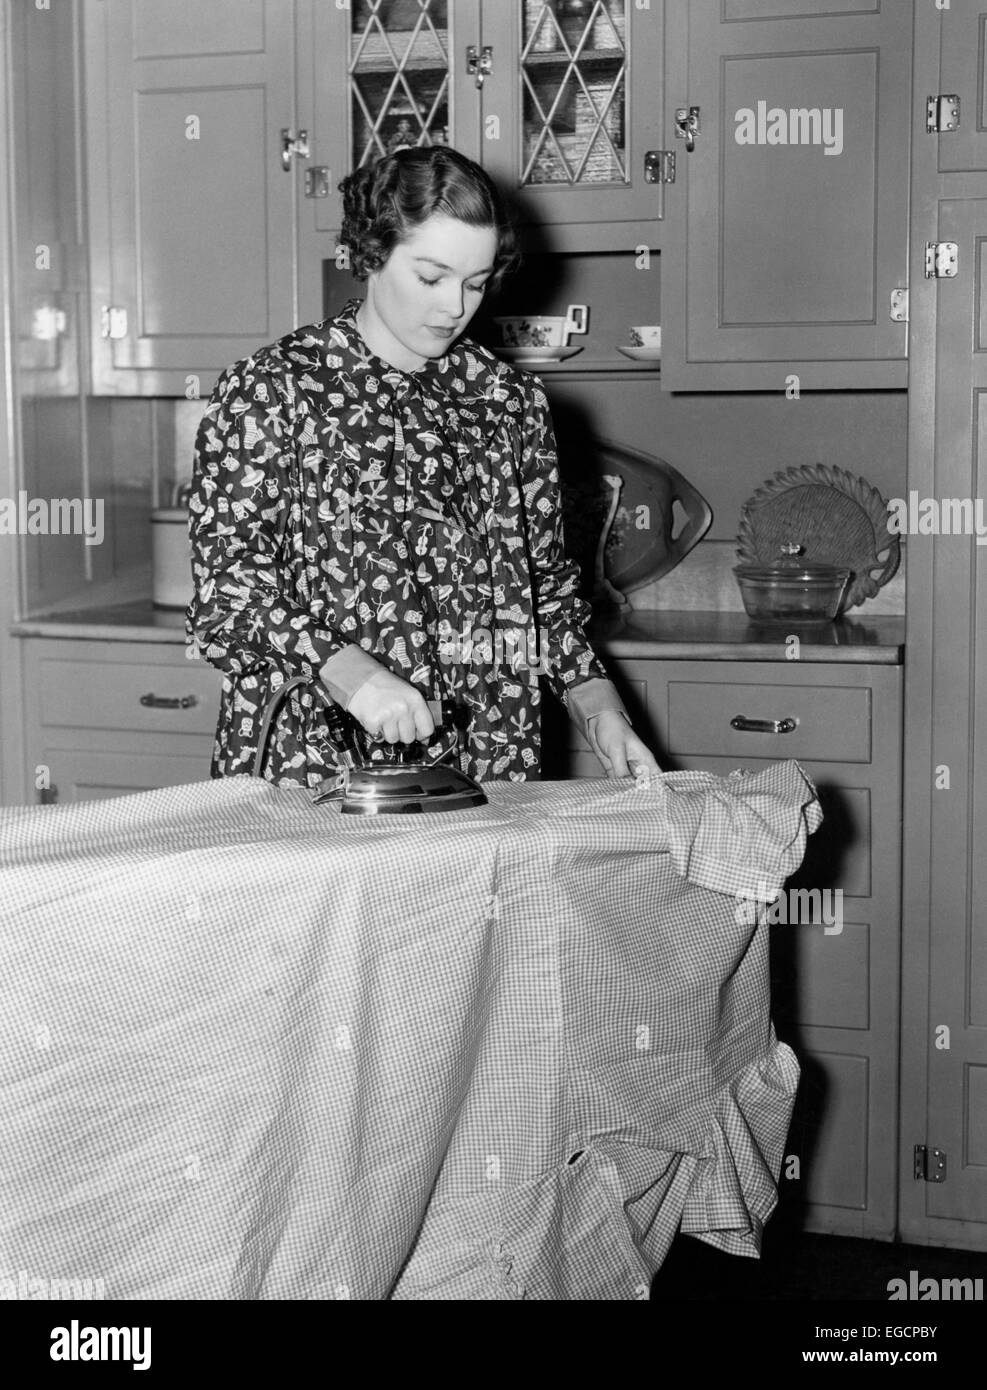 1930s 1940s Woman Wearing Printed Smock Apron Standing